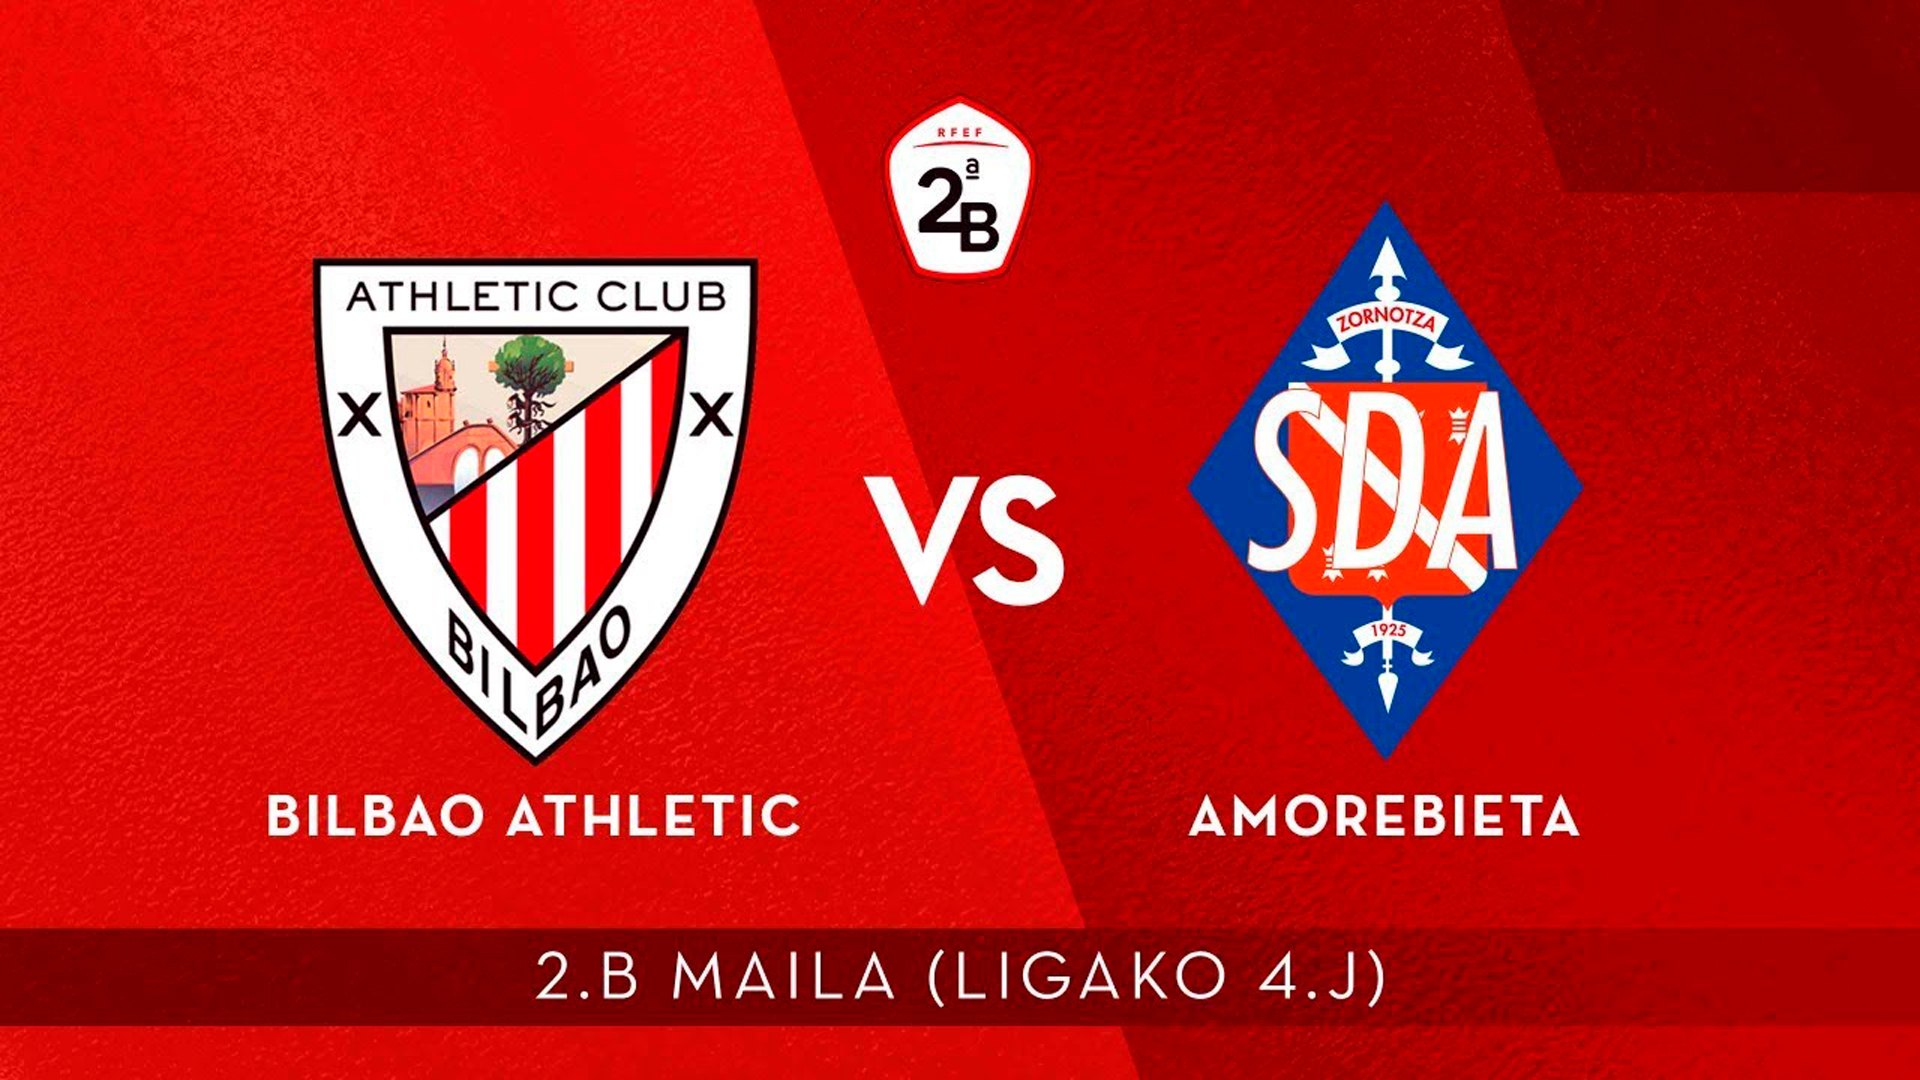 Live: Bilbao Athletic vs SD Amorebieta (18:00 CET)